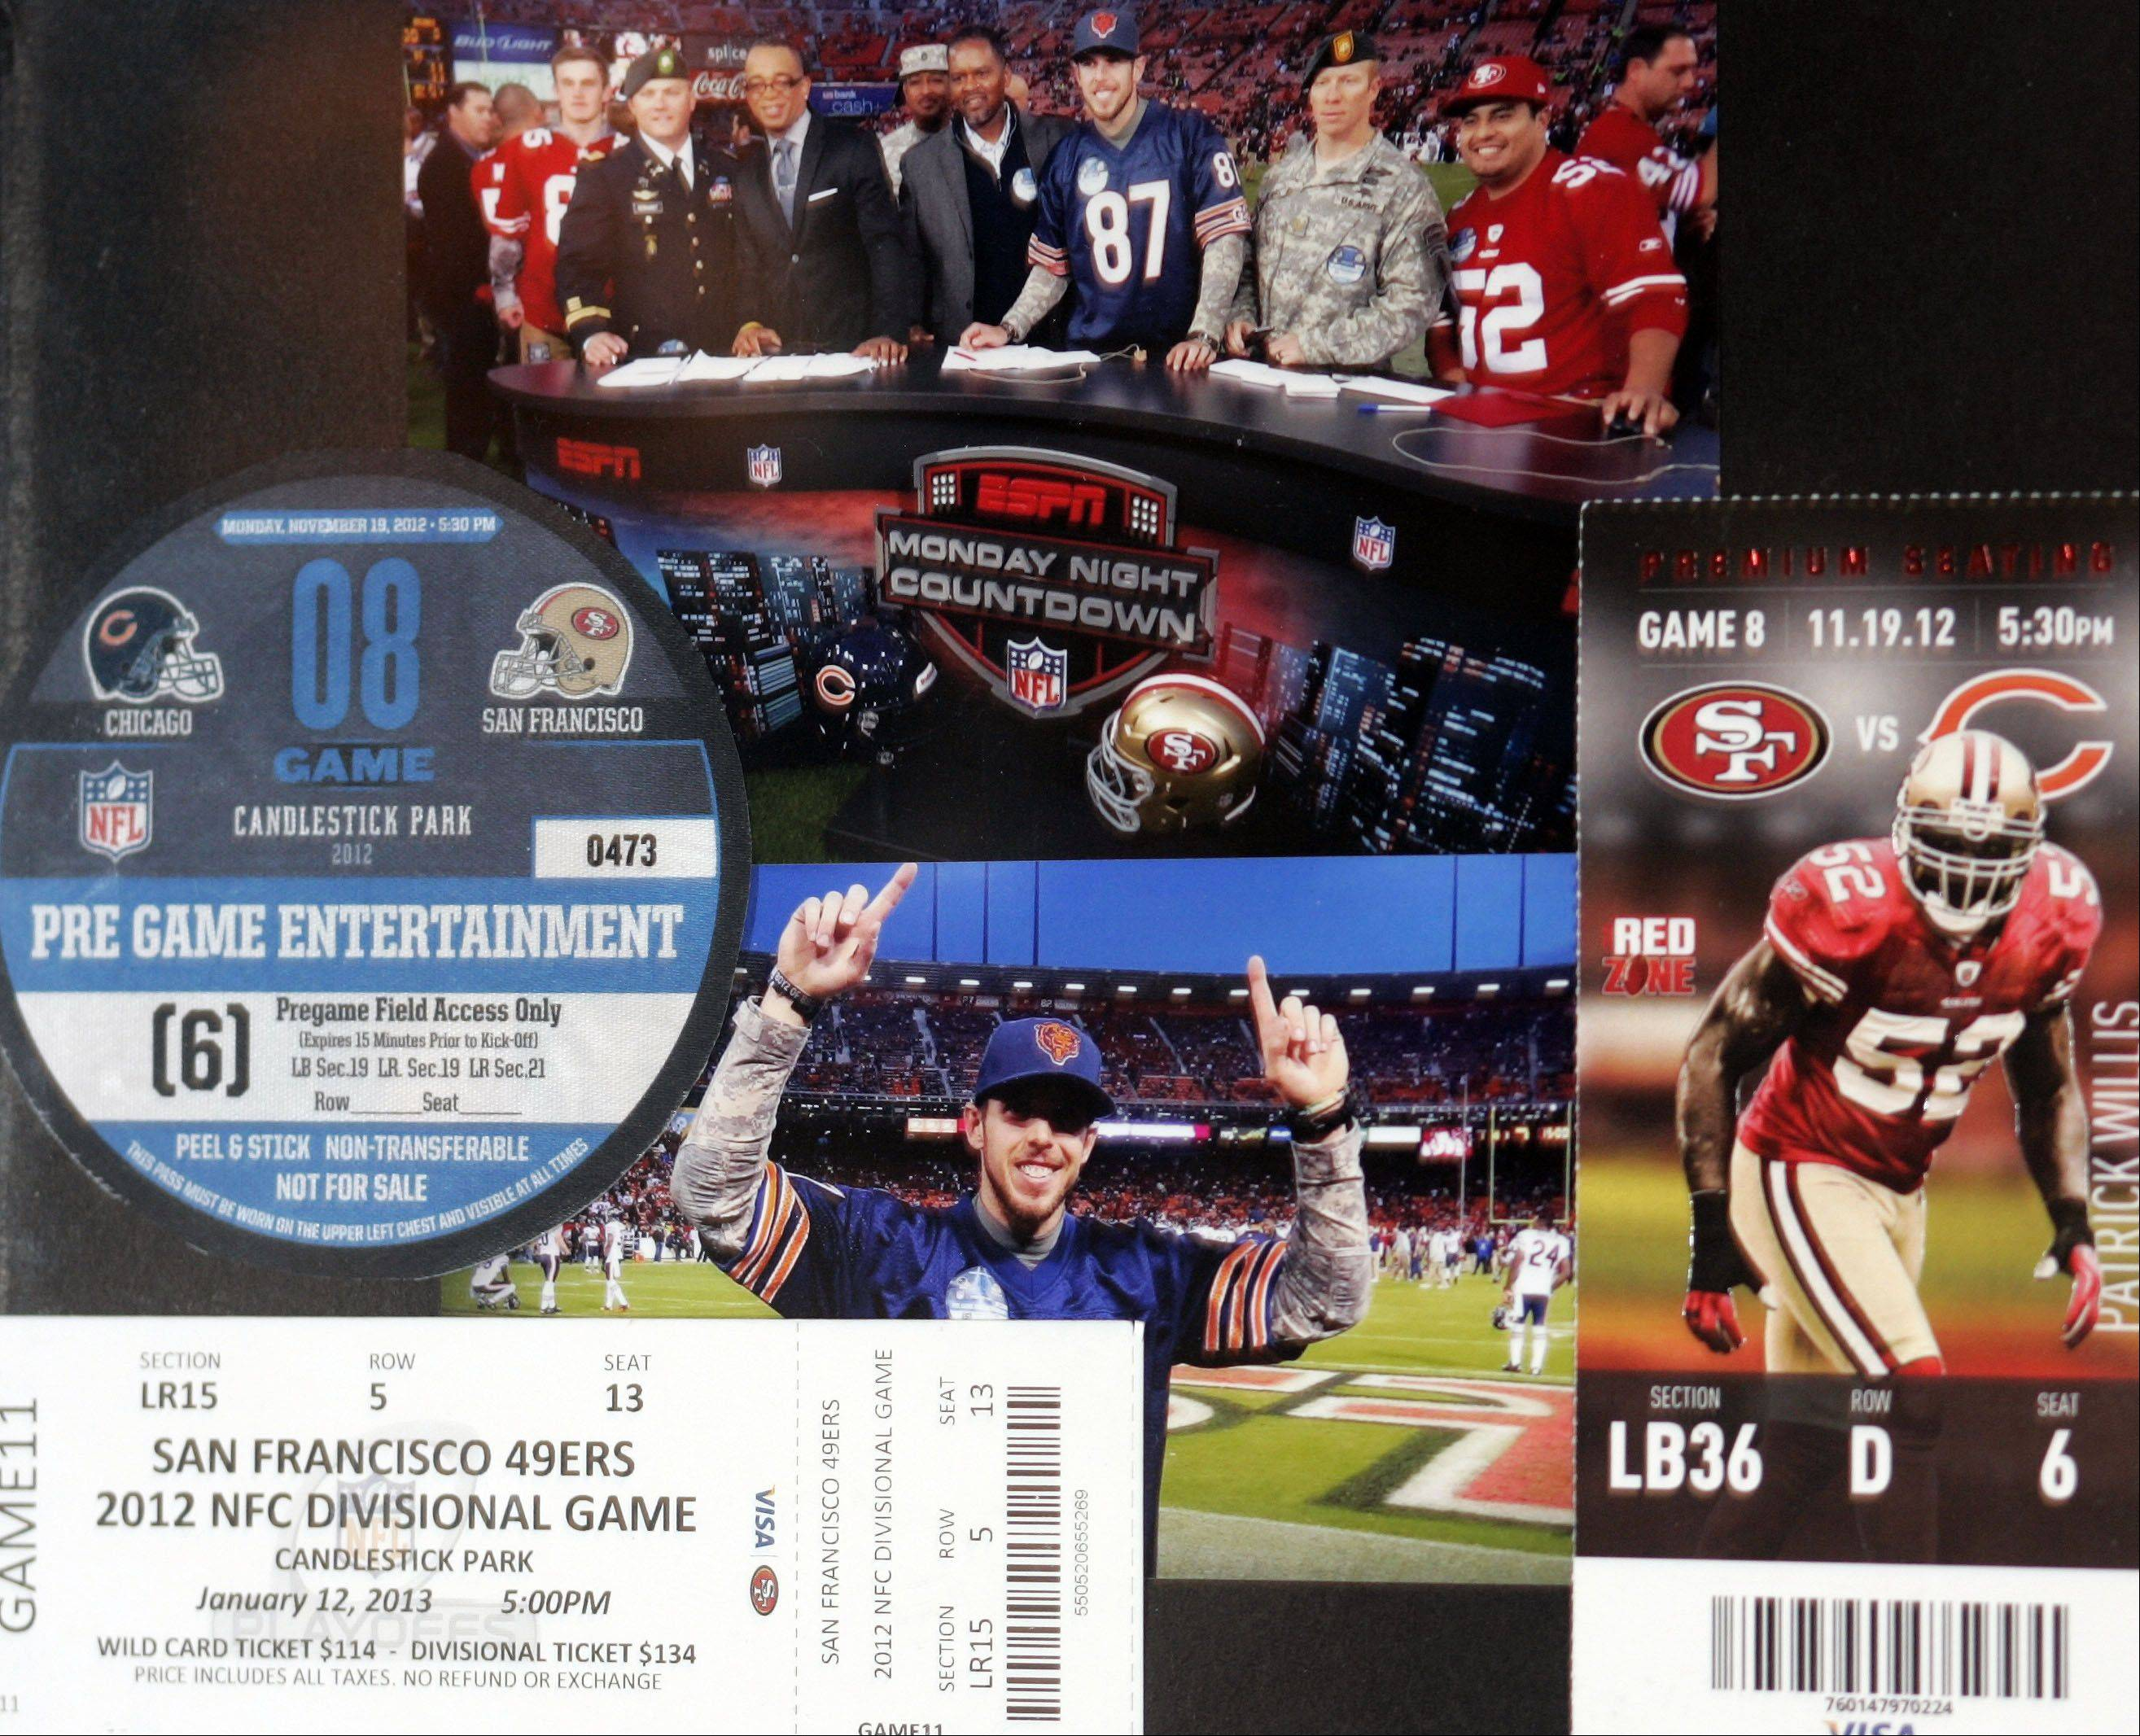 Here's the picture collage from the Bears-San Francisco 49ers game.